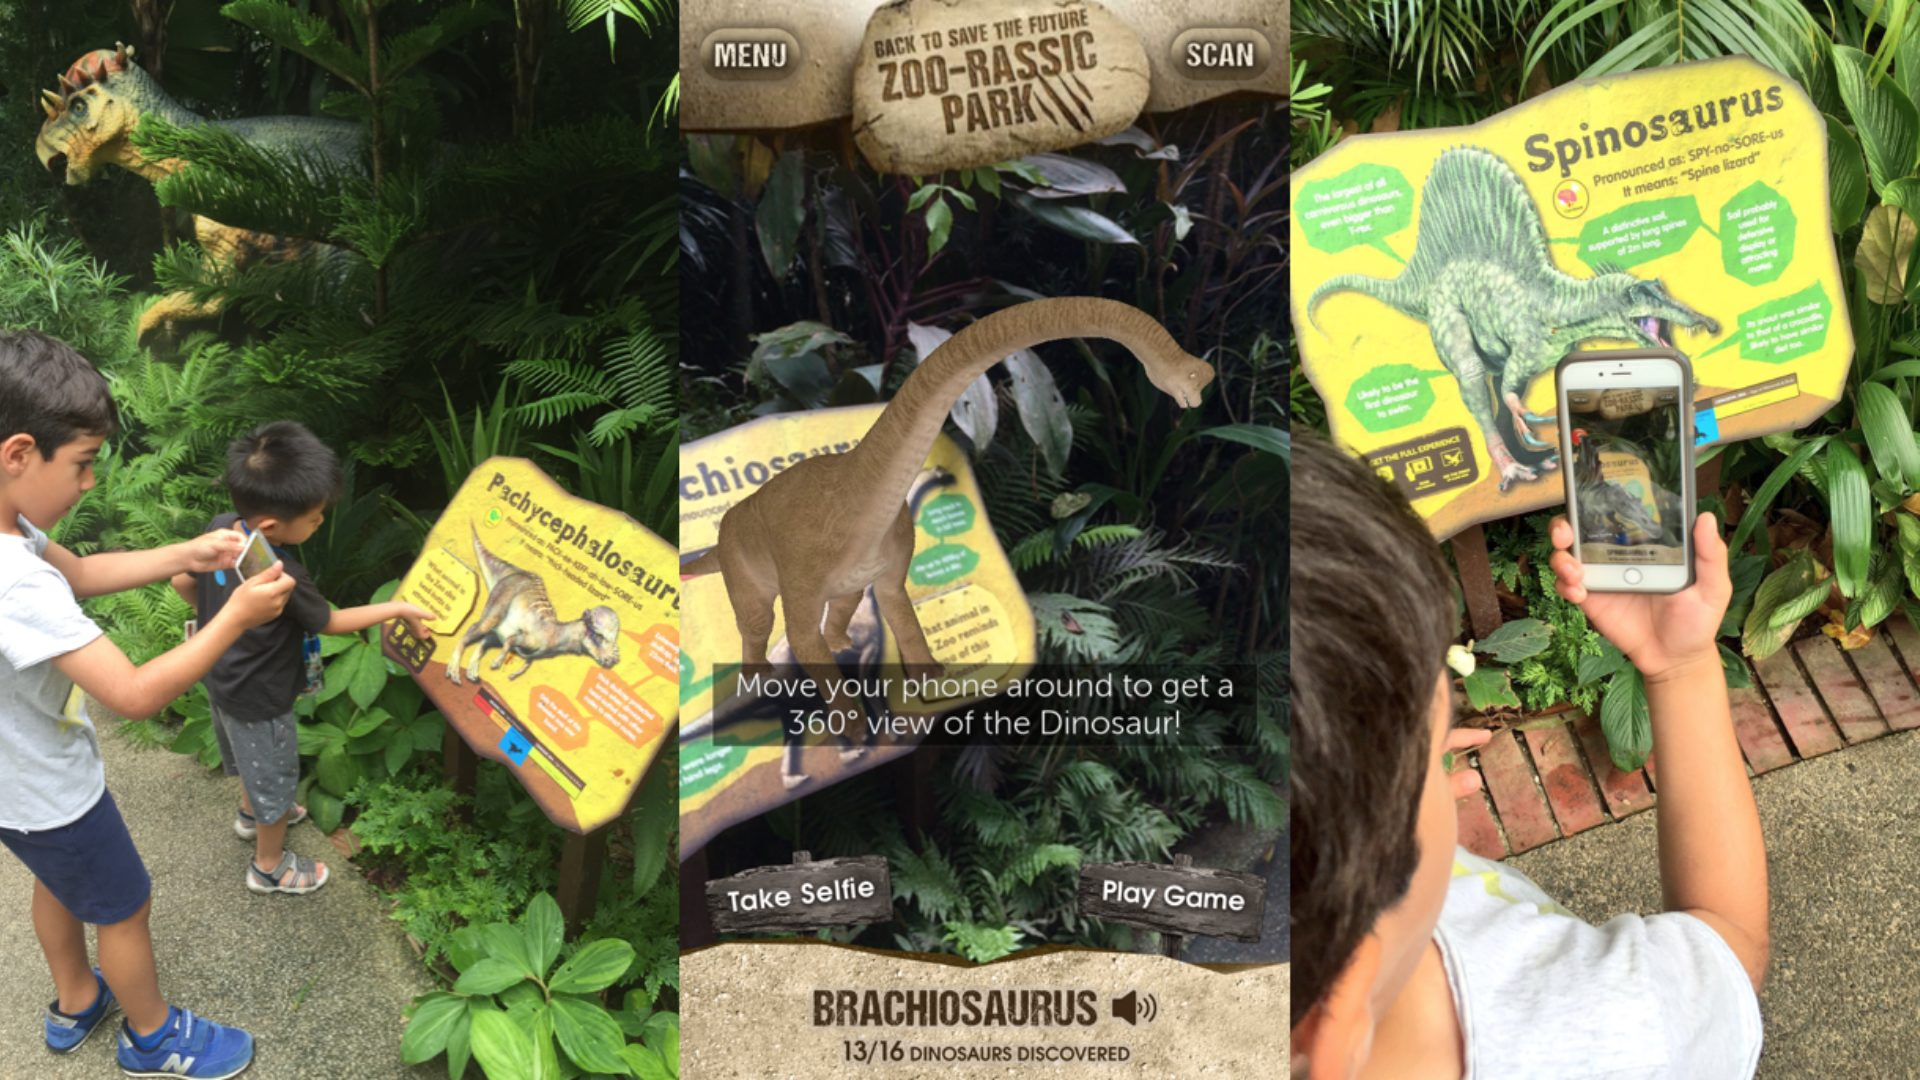 Case study: Enhancing the Singapore Zoo experience with AR